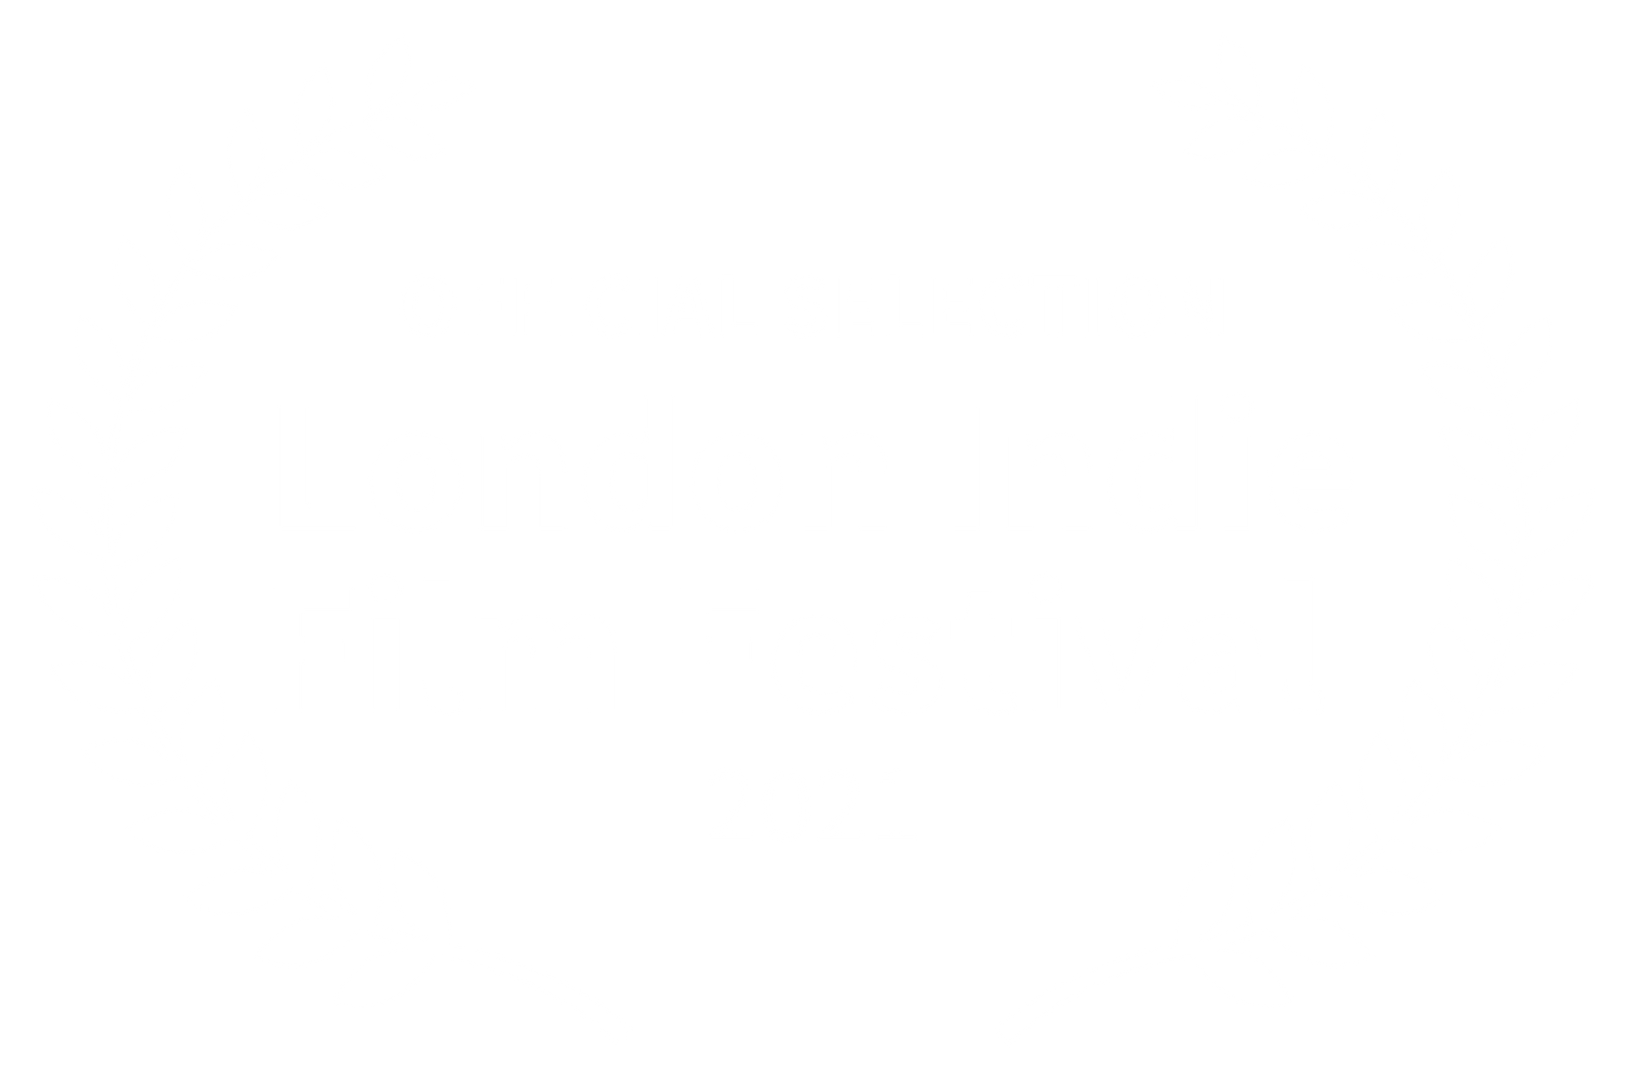 OFFICIAL SELECTION - London Indie Film F